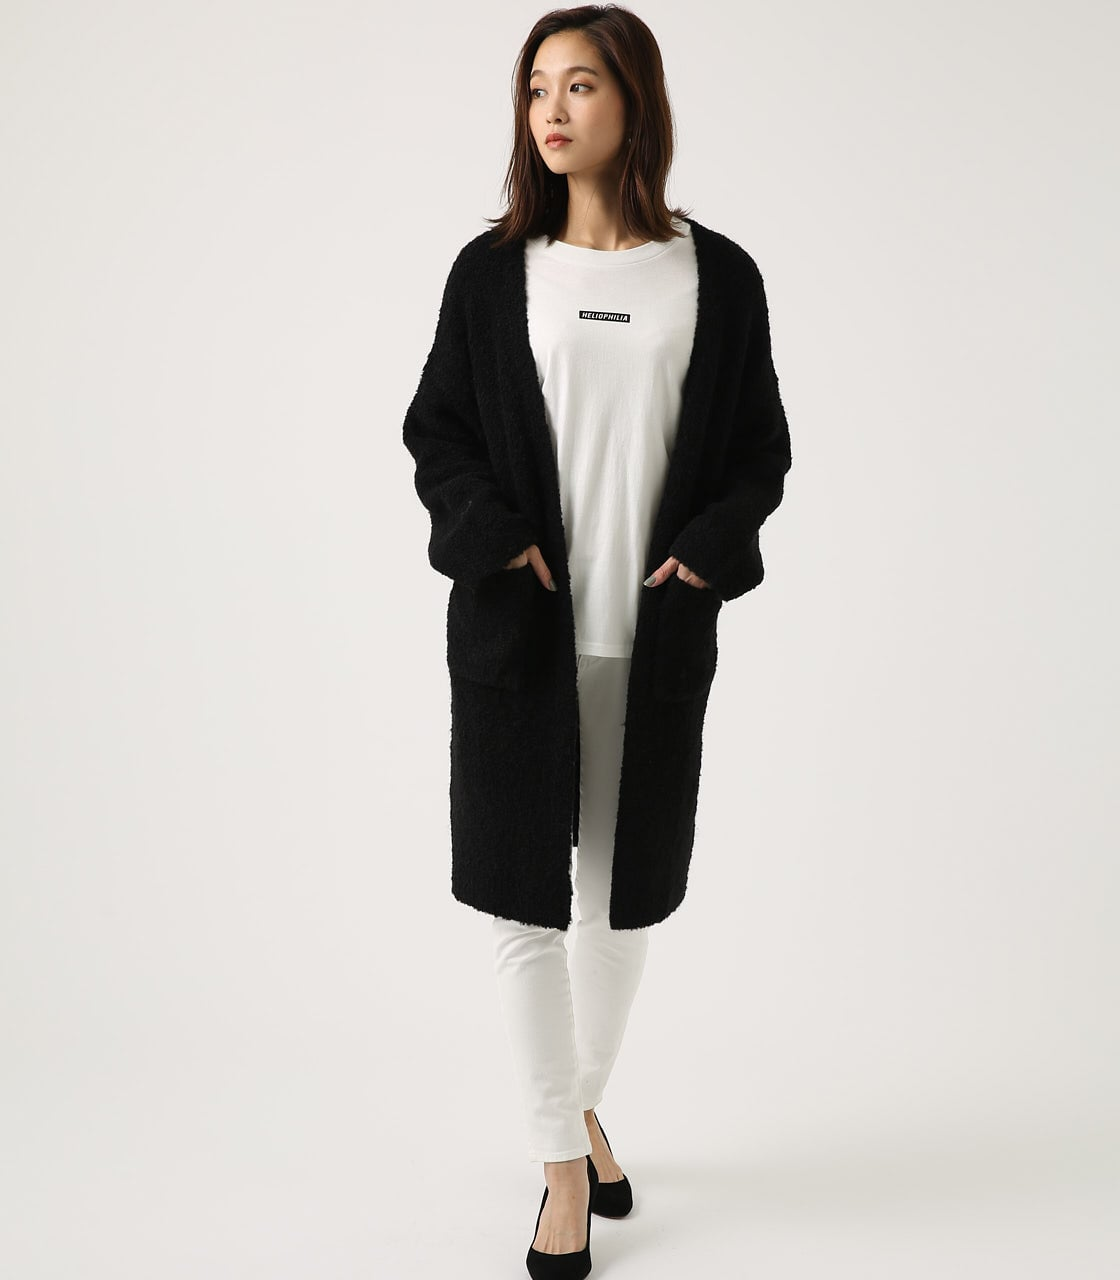 【AZUL BY MOUSSY】ブークレロングカーデ 詳細画像 BLK 4